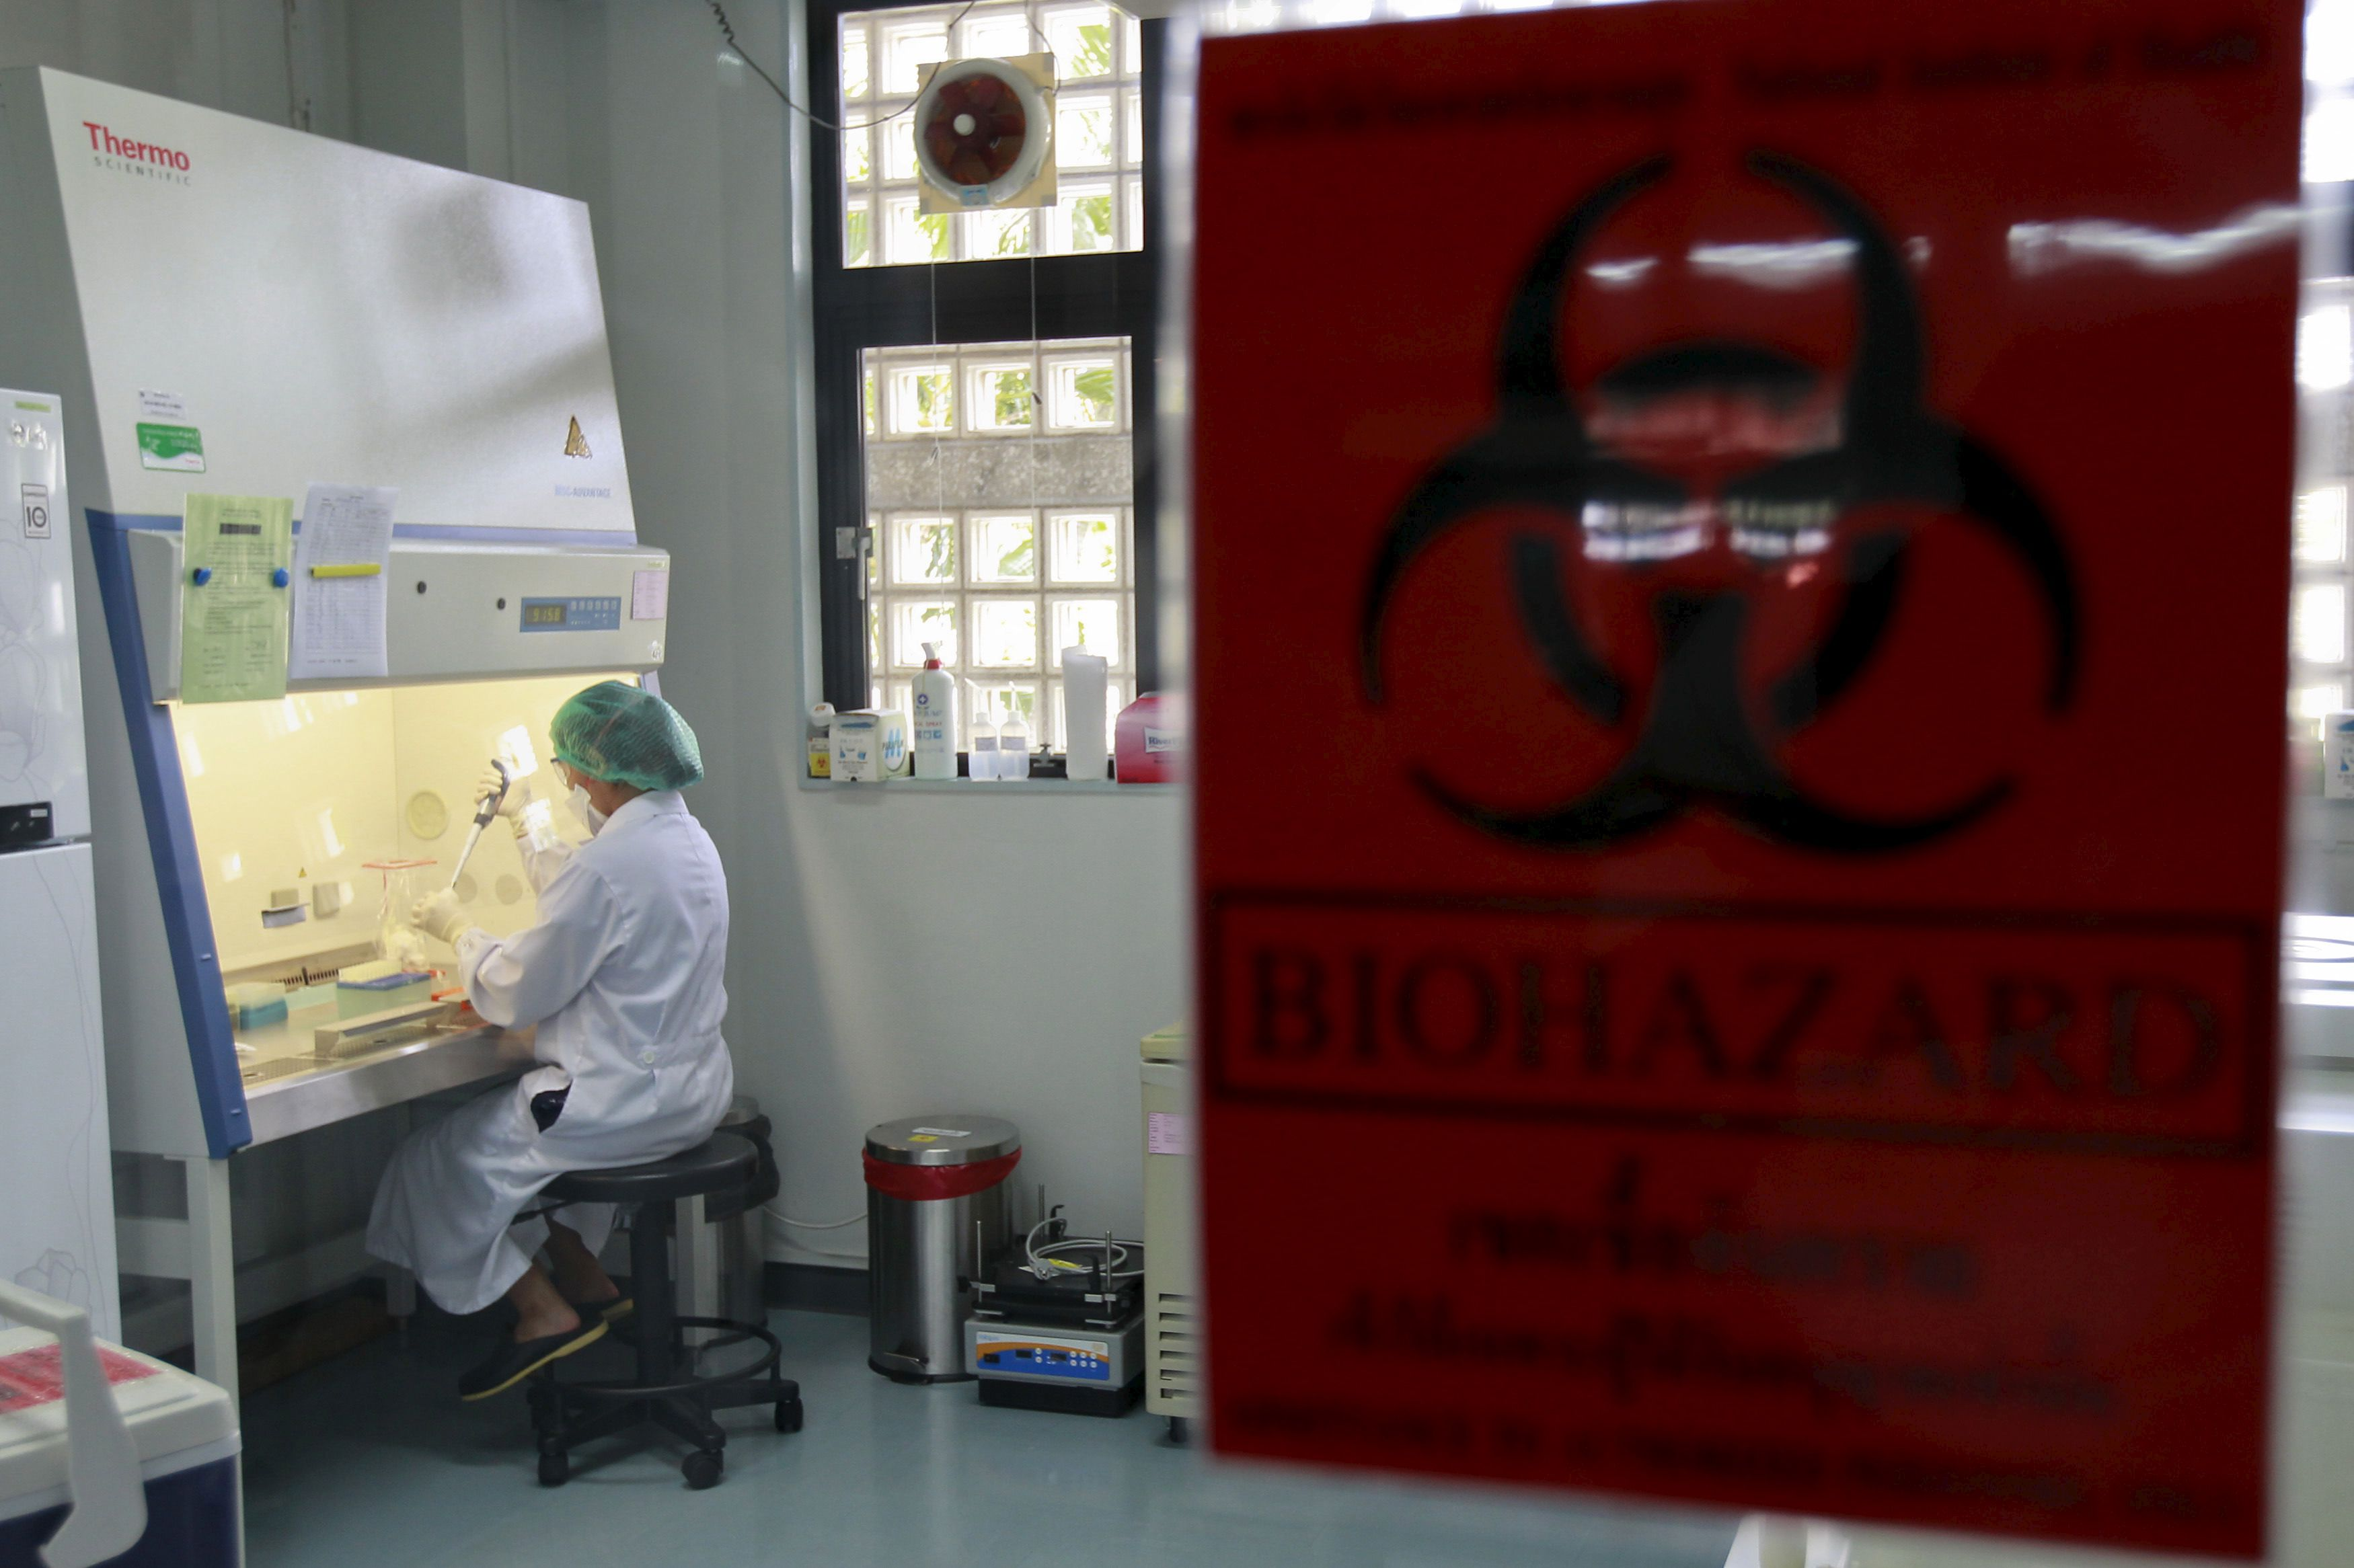 A lab staff tests a fluid sample taken from people who recently returned from South Korea and are suspected of Middle East Respiratory Syndrome (MERS) infection inside a sample preparation lab at the National Institute of Health Department of Medical Sciences in Nonthaburi province, on the outskirts of Bangkok, Thailand, June 18, 2015. REUTERS/Chaiwat Subprasom  - RTX1H1UF